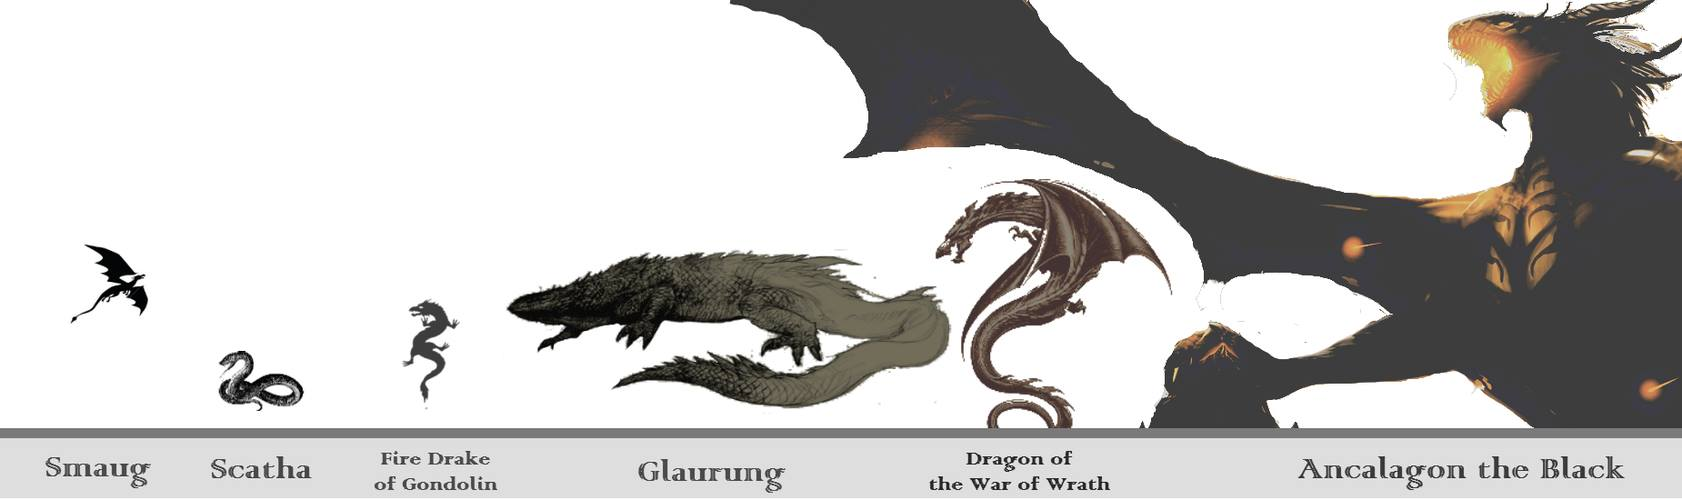 dragons the one wiki to rule them all fandom powered by wikia